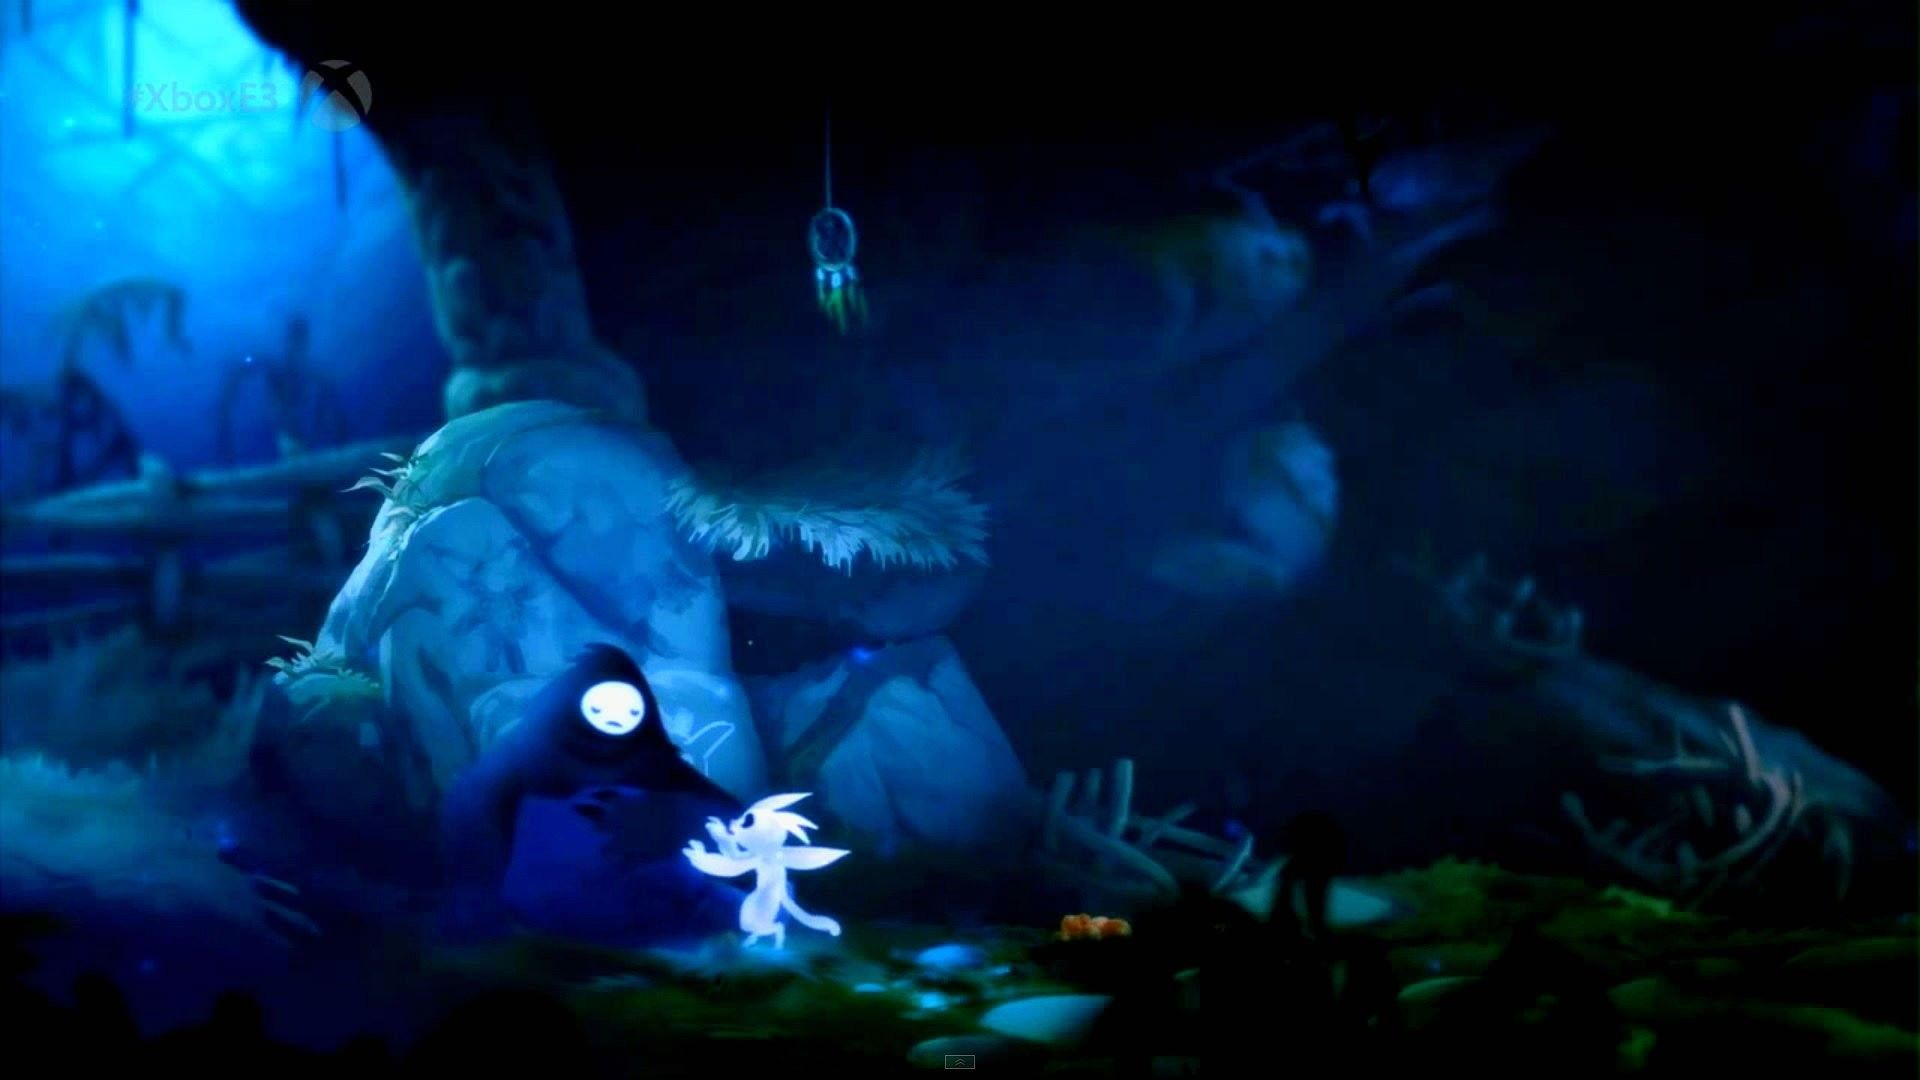 Ori And The Blind Forest 4k Wallpapers Top Free Ori And The Blind